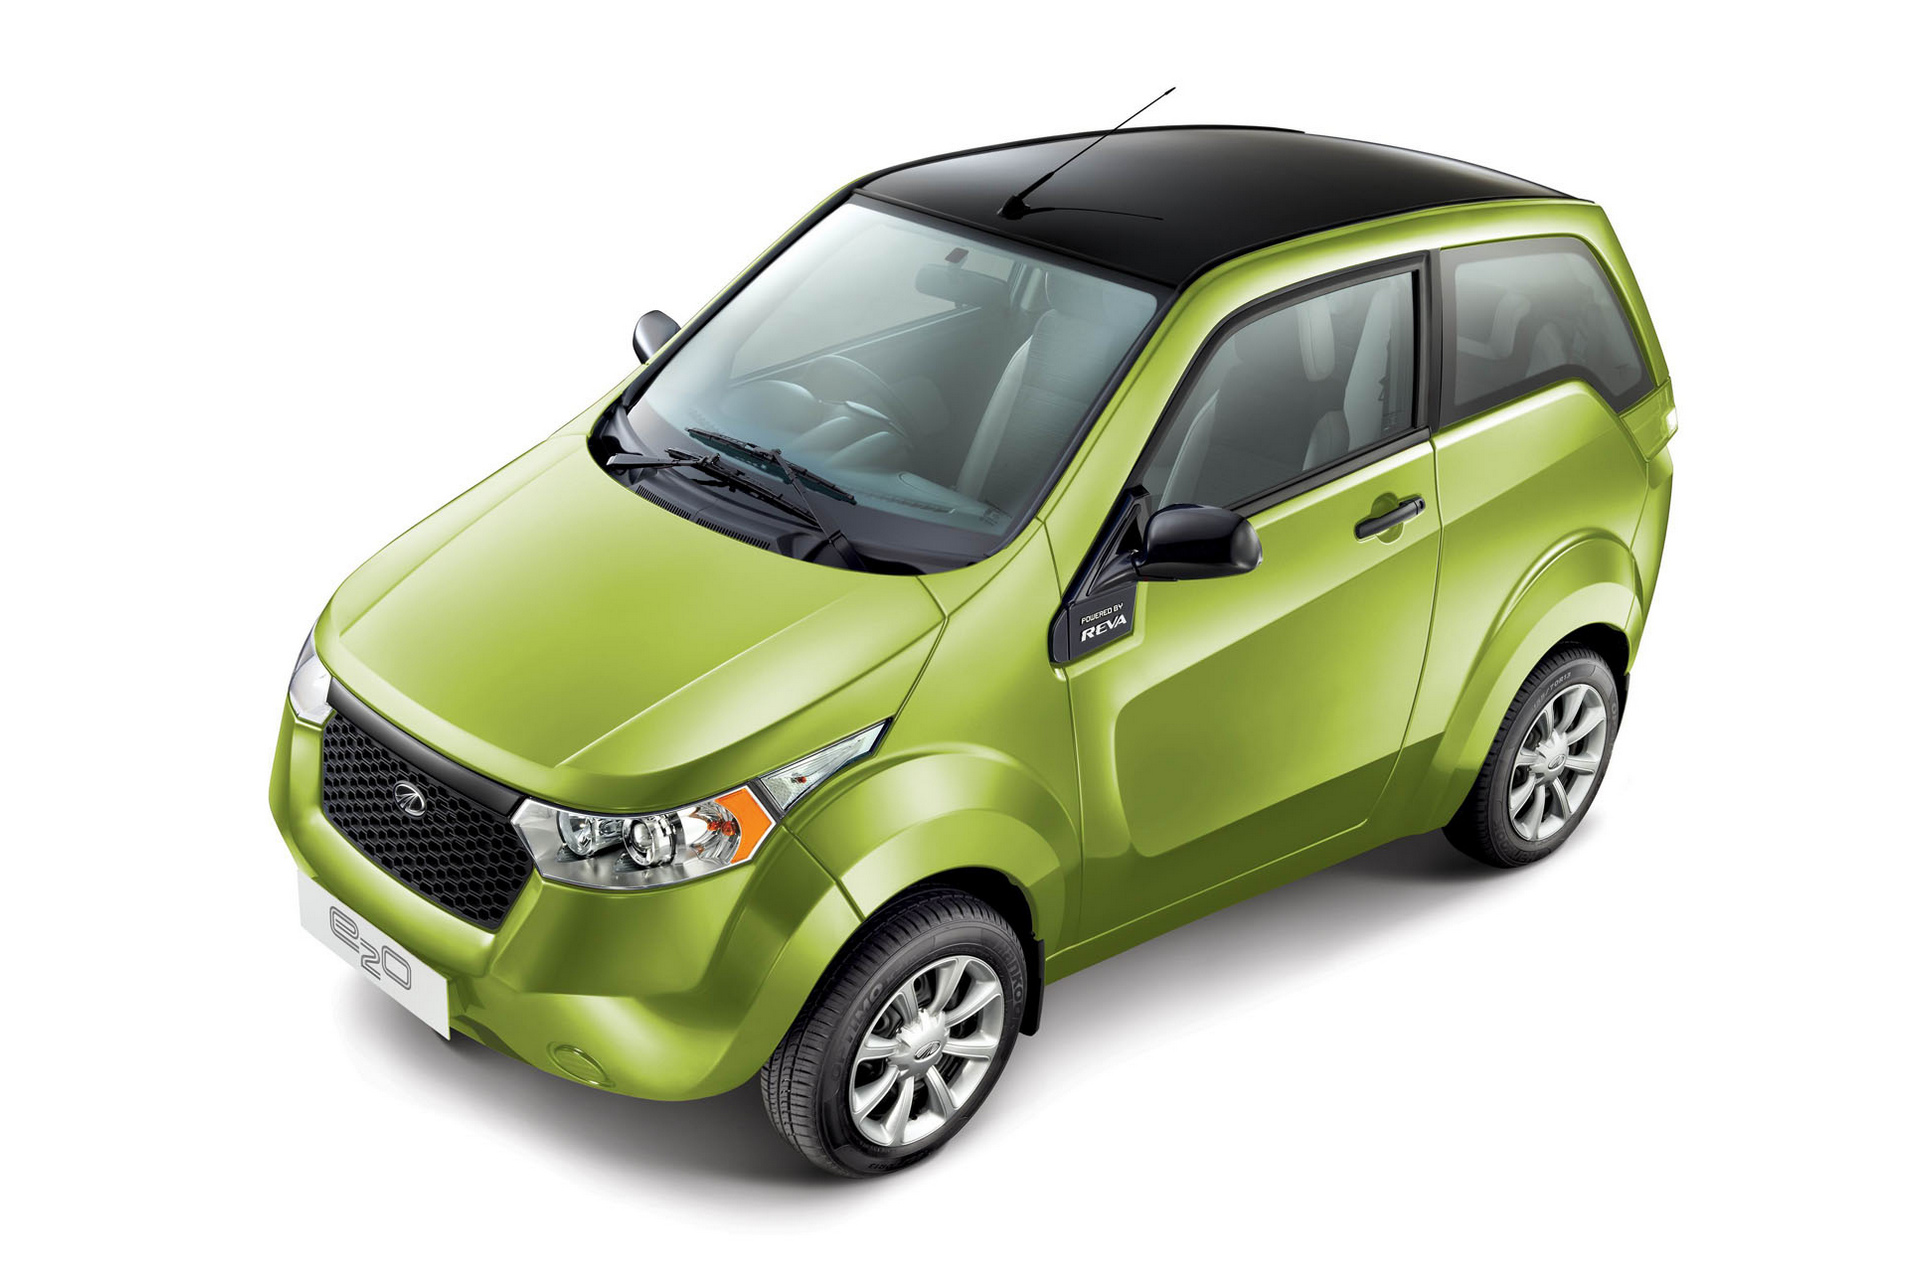 The Smallest Cars in the World - Carrrs Auto Portal